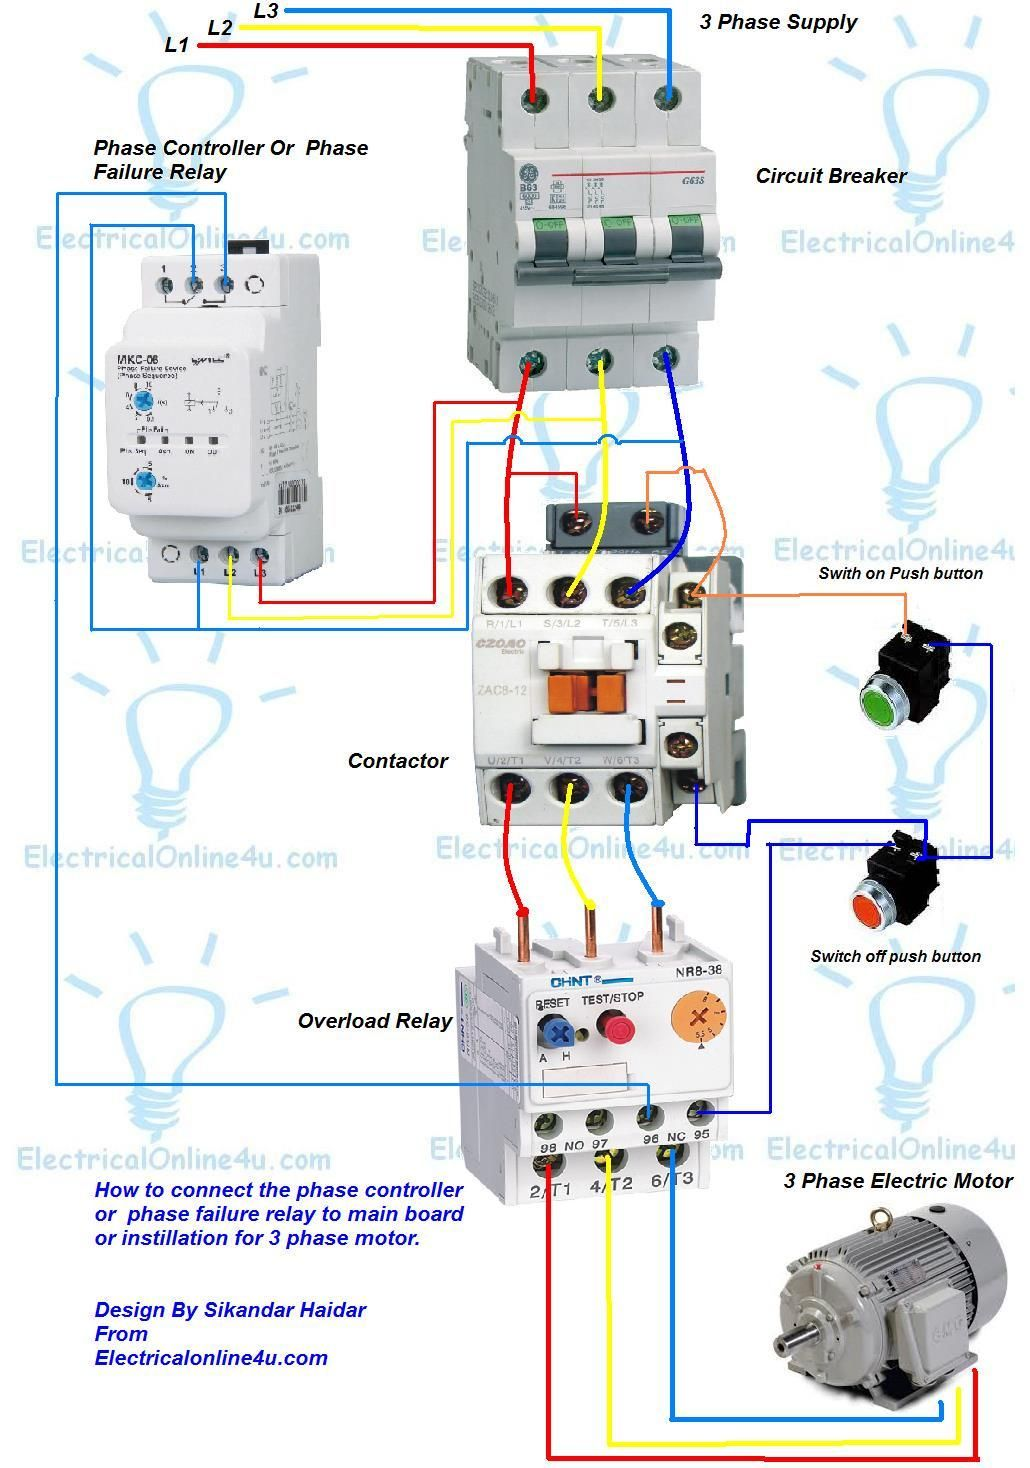 Thermistor Relay Wiring Diagram Lube Oil System Phase Controller Failure Di